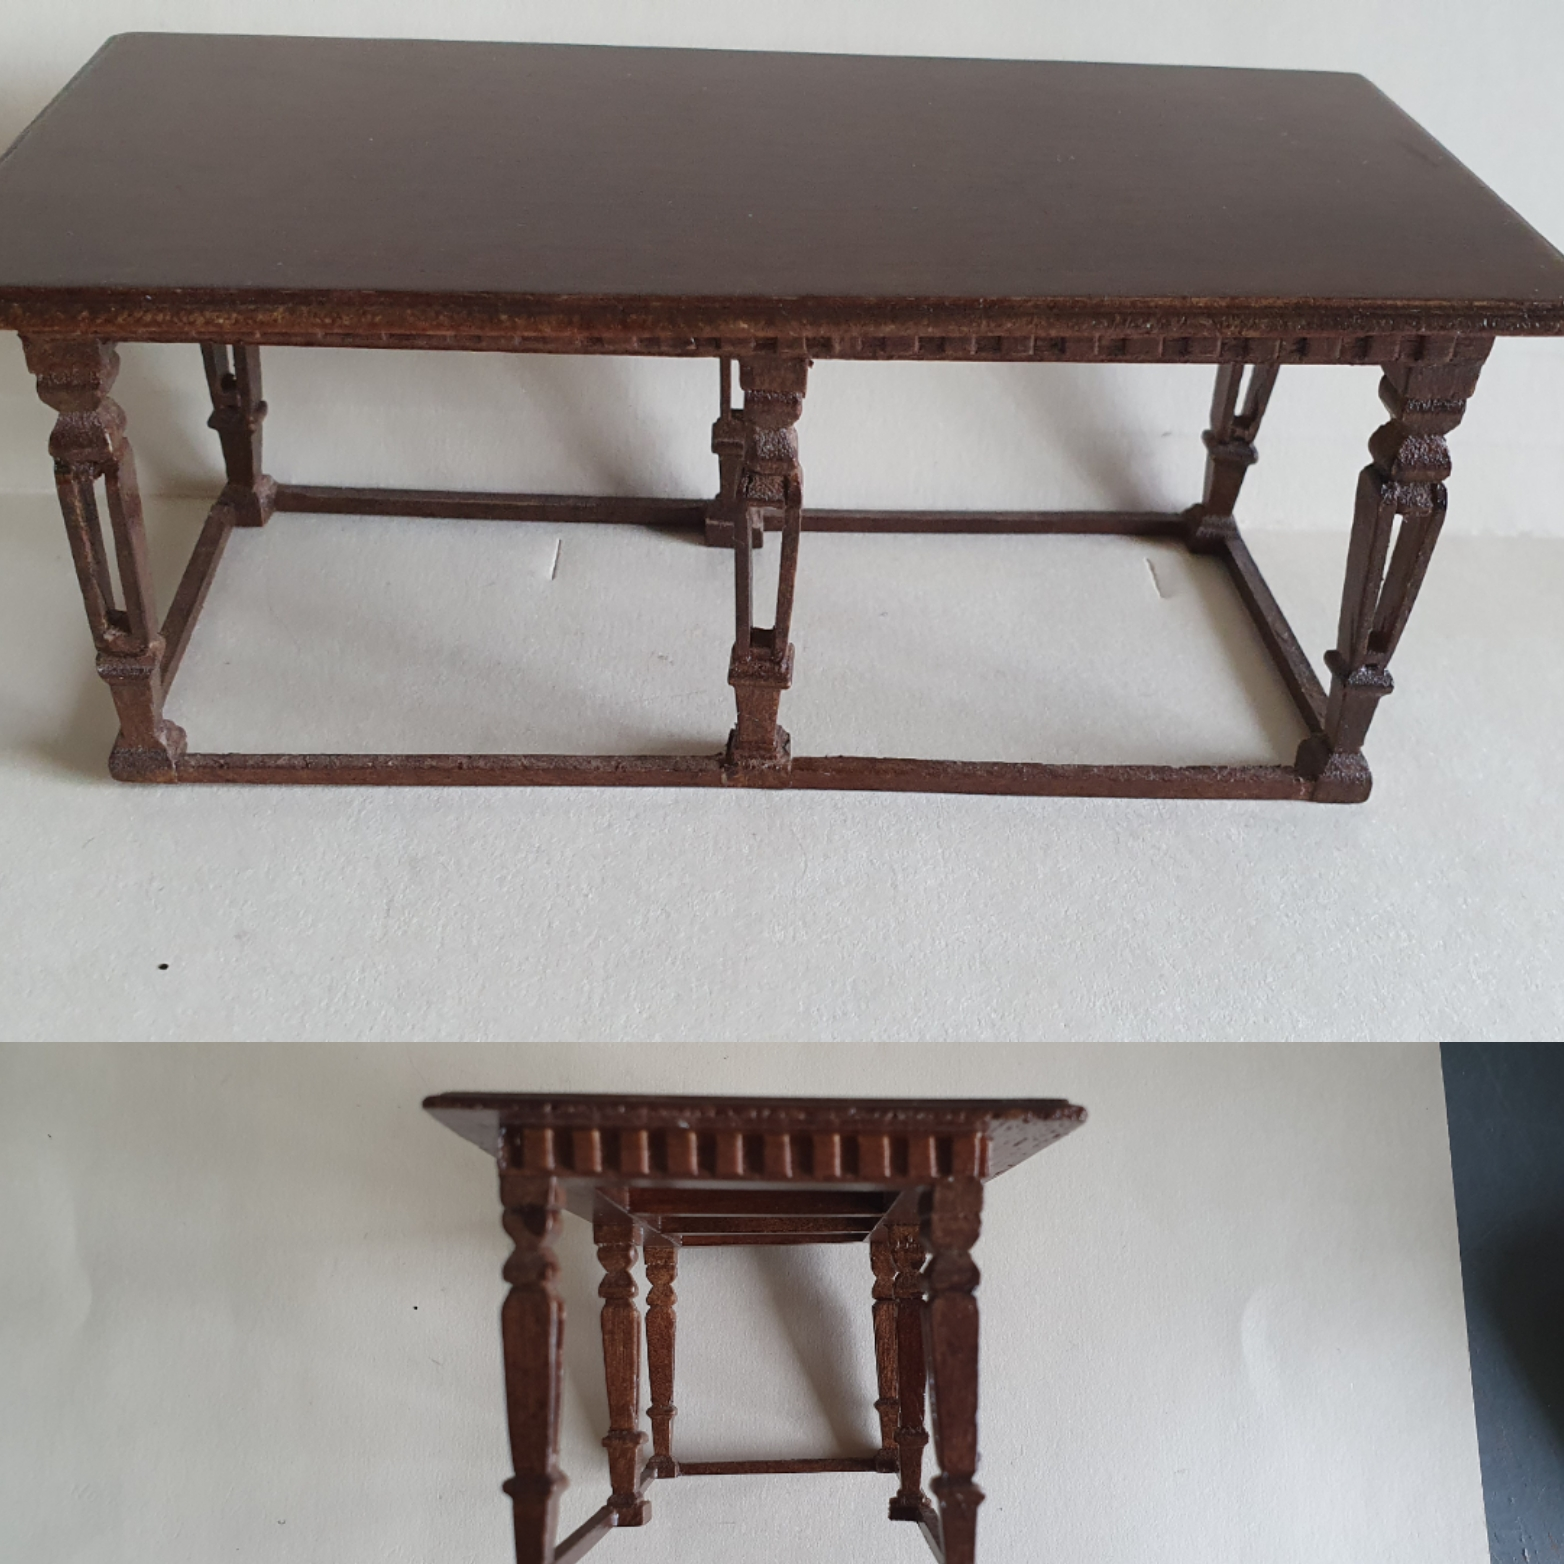 Bespaq-Dutch Refectory Table $27.50